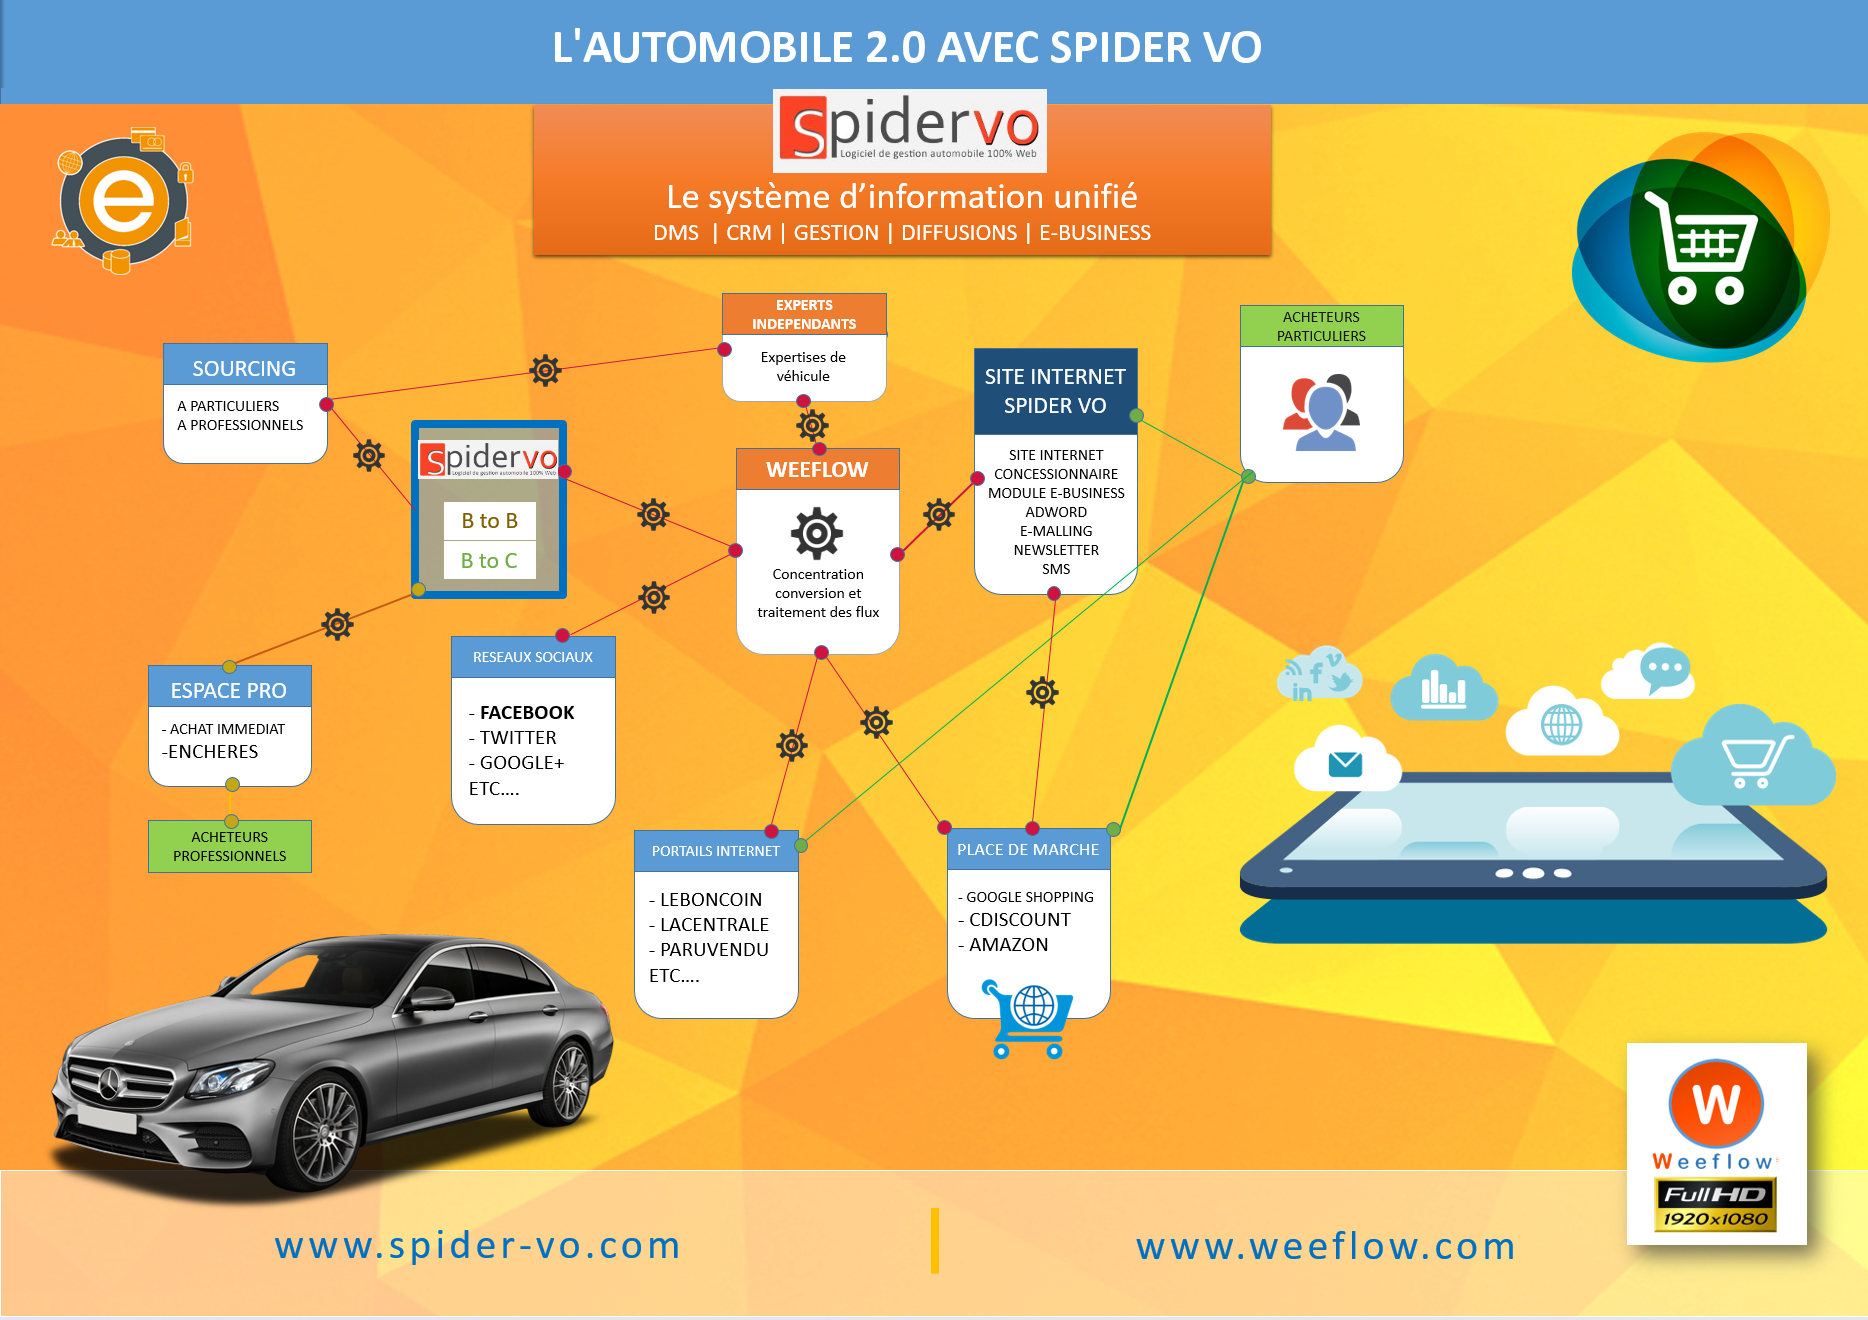 L'automobile 2.0 avec SPIDER VO !